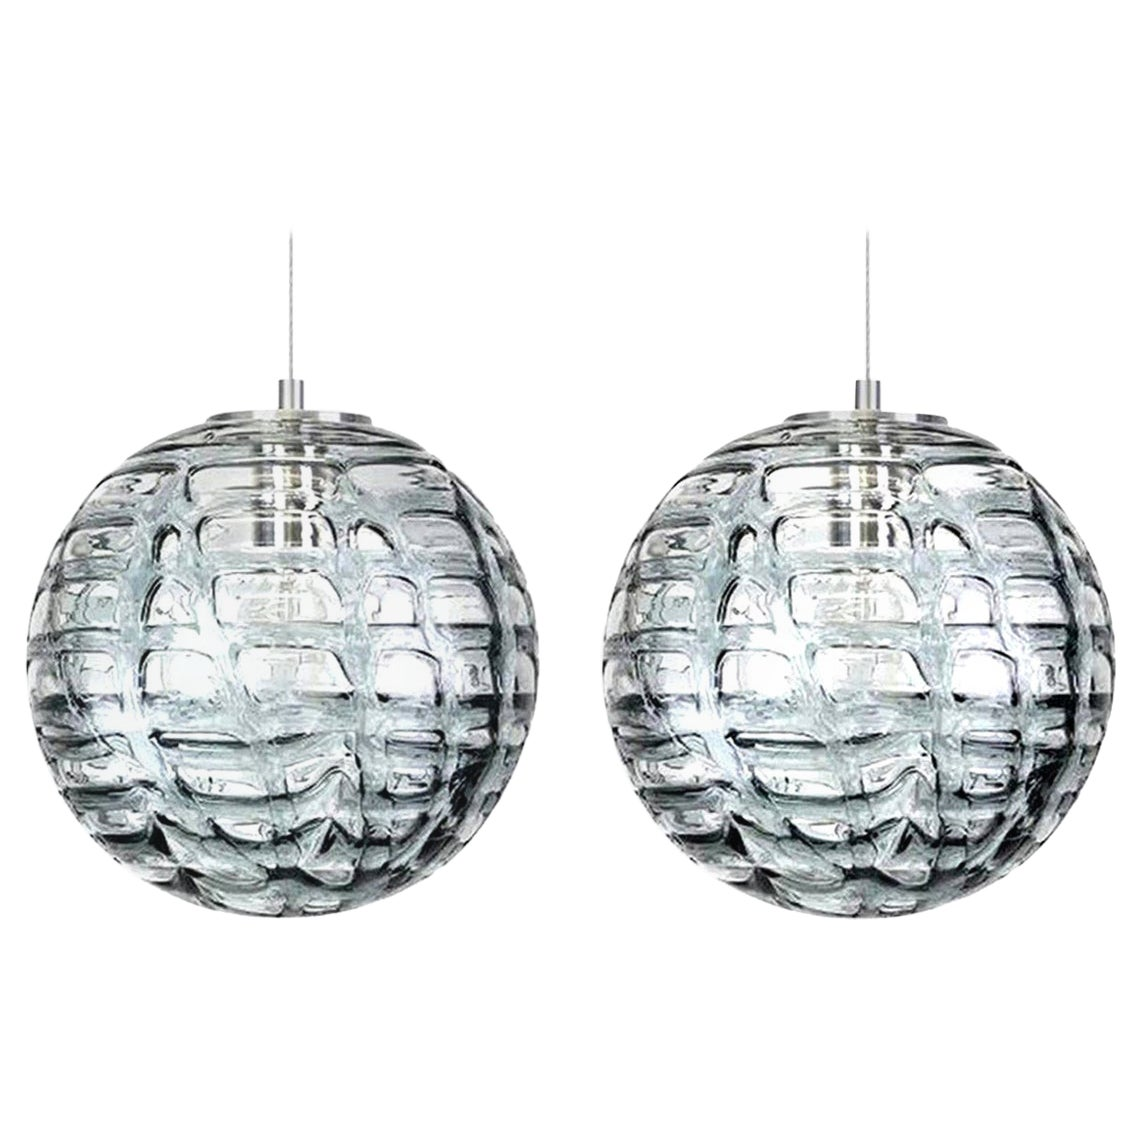 Exceptional Pair of Grey Murano High-End Glass Pendant Lights Venini Style 1960s